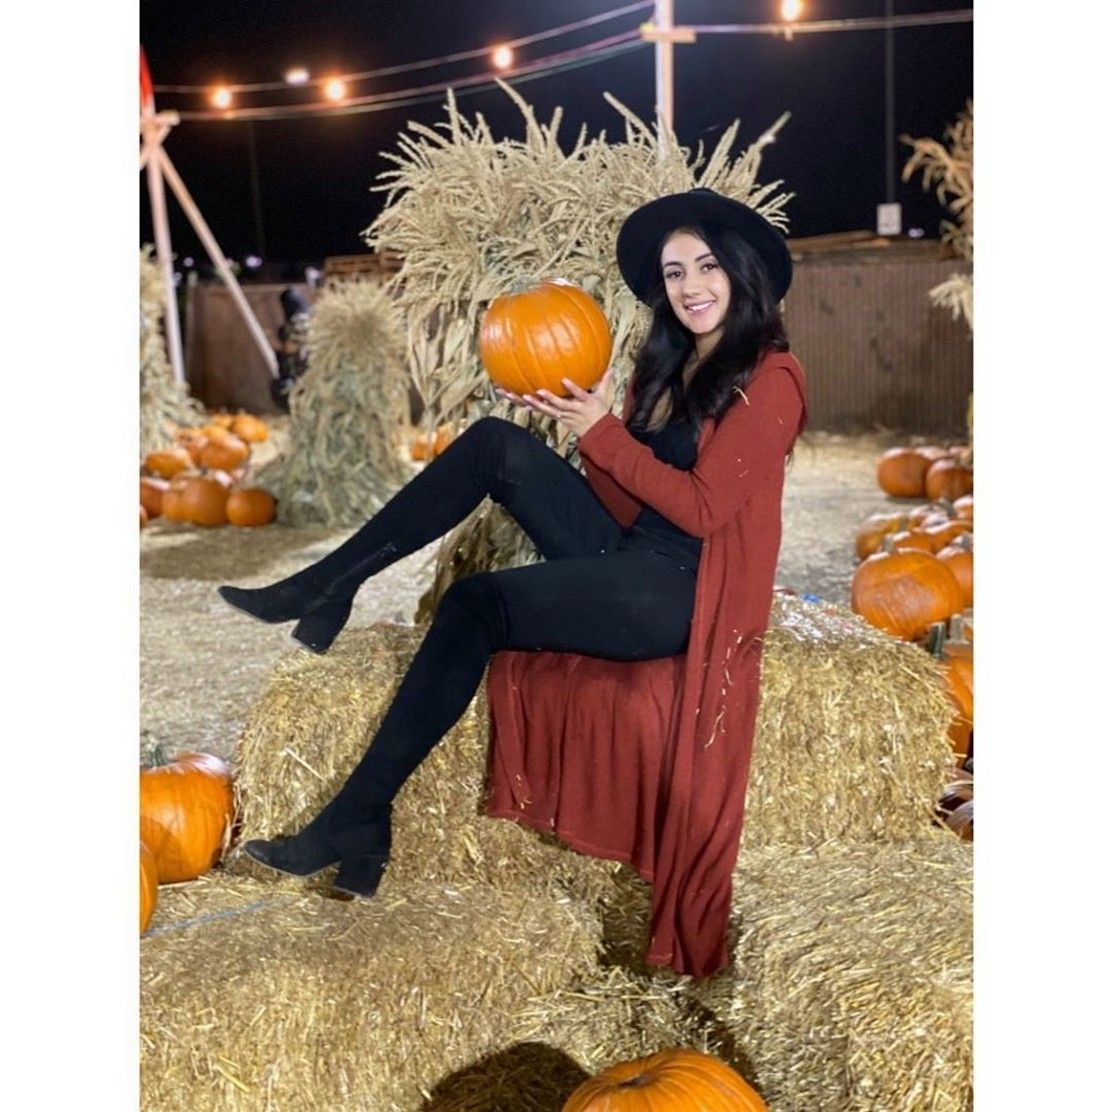 60 Holiday Outfits Woman at Pumpkin Patch #pumpkinpatchoutfitwomen Beautiful 60 Holiday Outfits Woman at Pumpkin Patch #pumpkinpatchoutfitwomen 60 Holiday Outfits Woman at Pumpkin Patch #pumpkinpatchoutfitwomen Beautiful 60 Holiday Outfits Woman at Pumpkin Patch #pumpkinpatchoutfitwomen